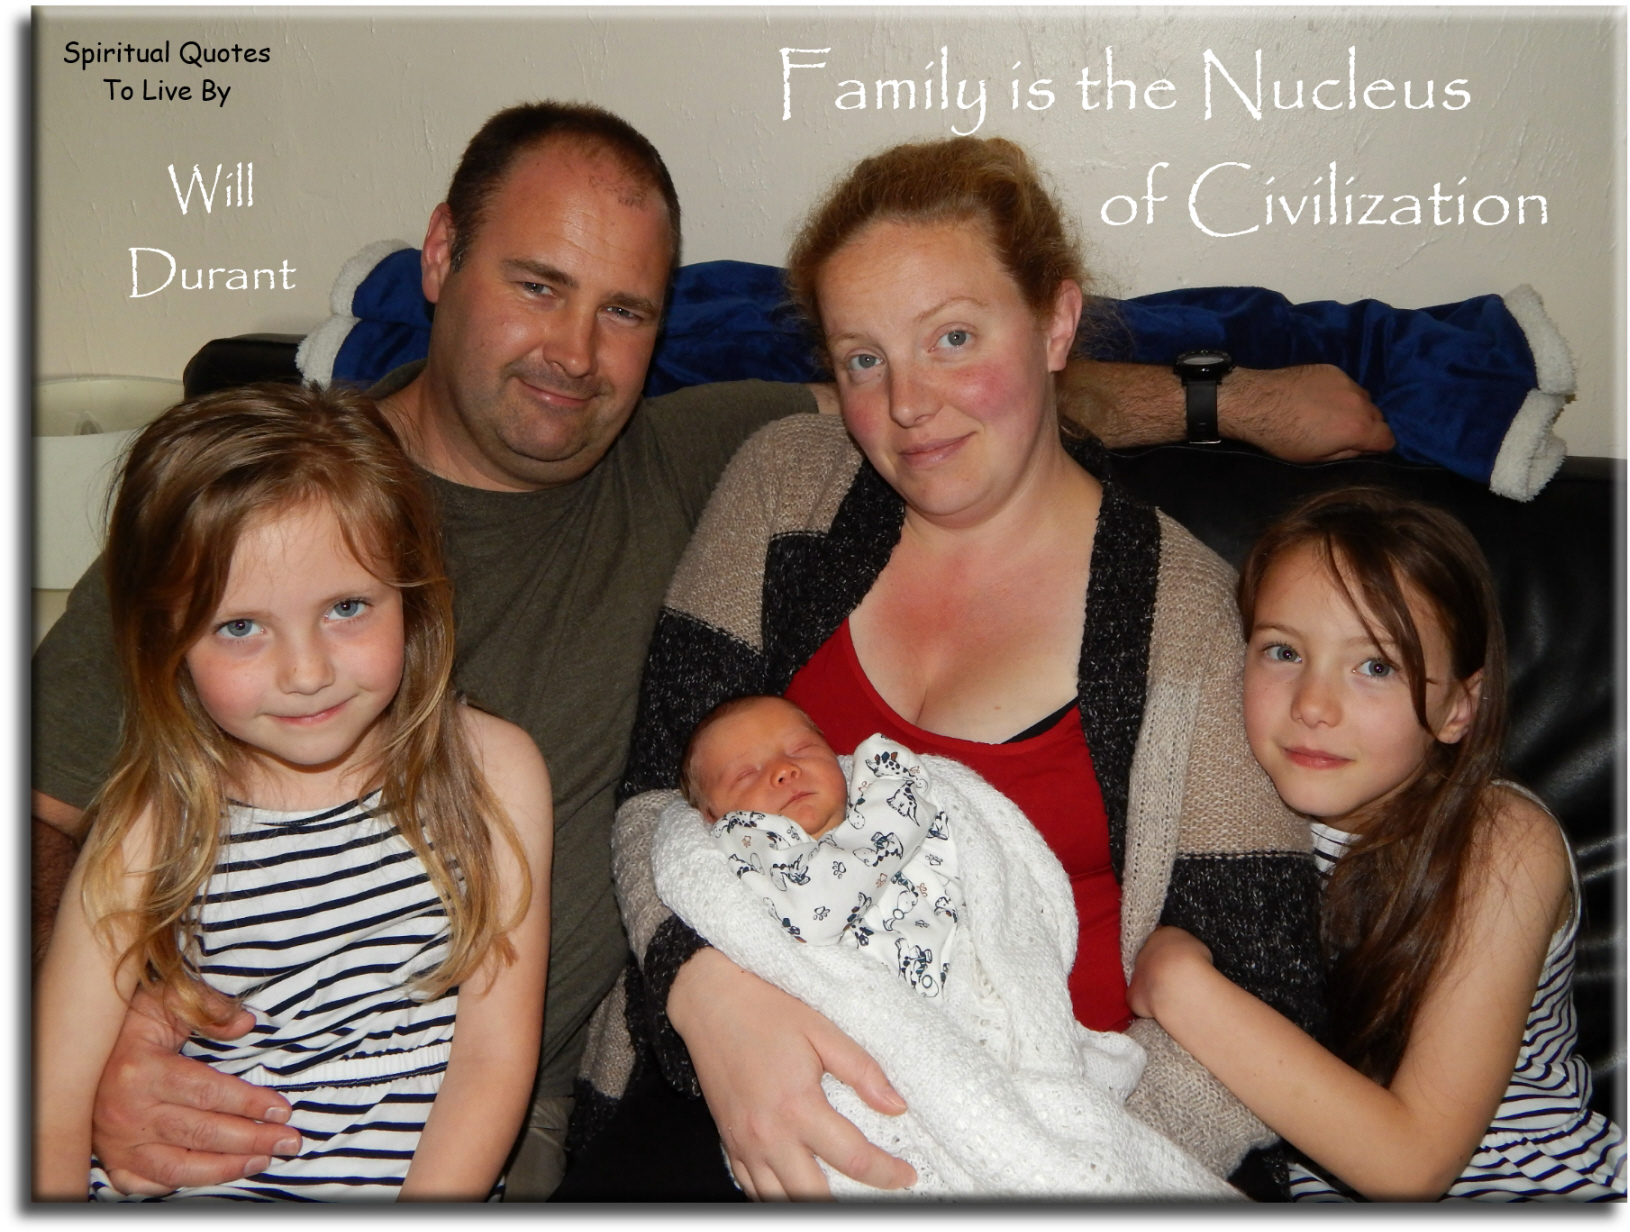 Will Durant quote: The family is the nucleus of civilization. - Spiritual Quotes To Live By